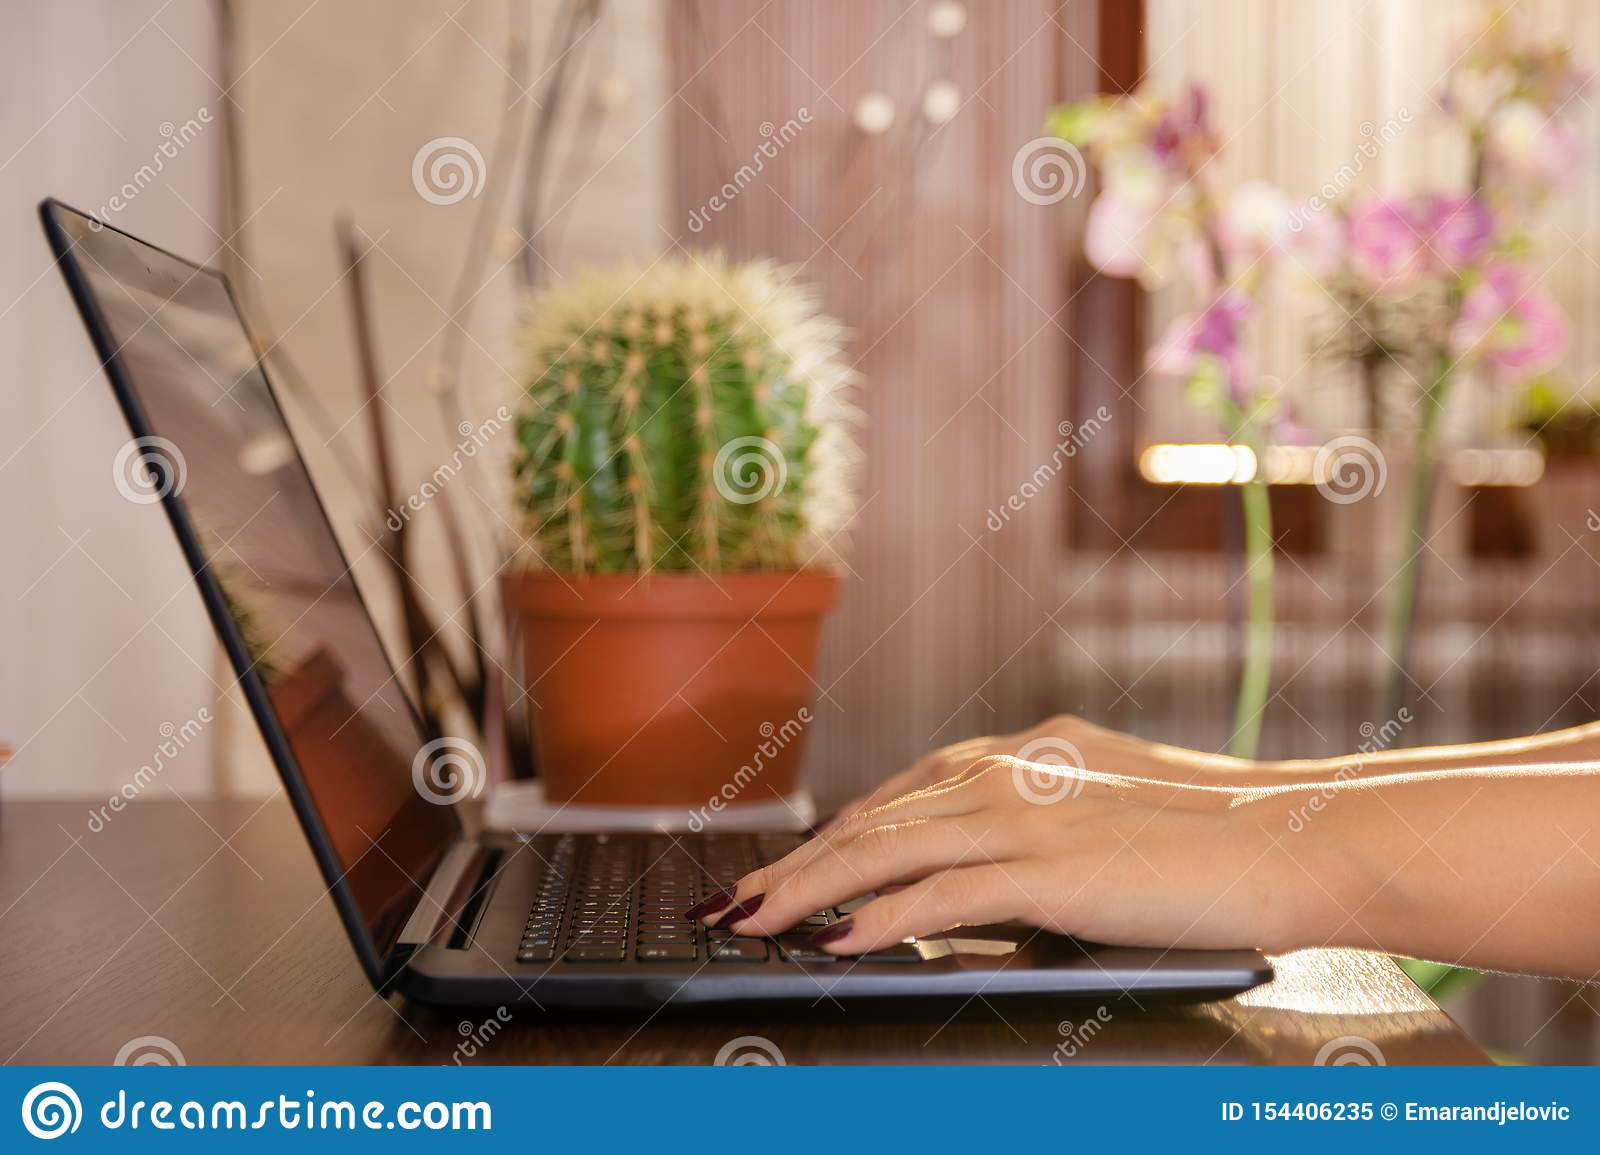 Woman working at home office hand on laptop